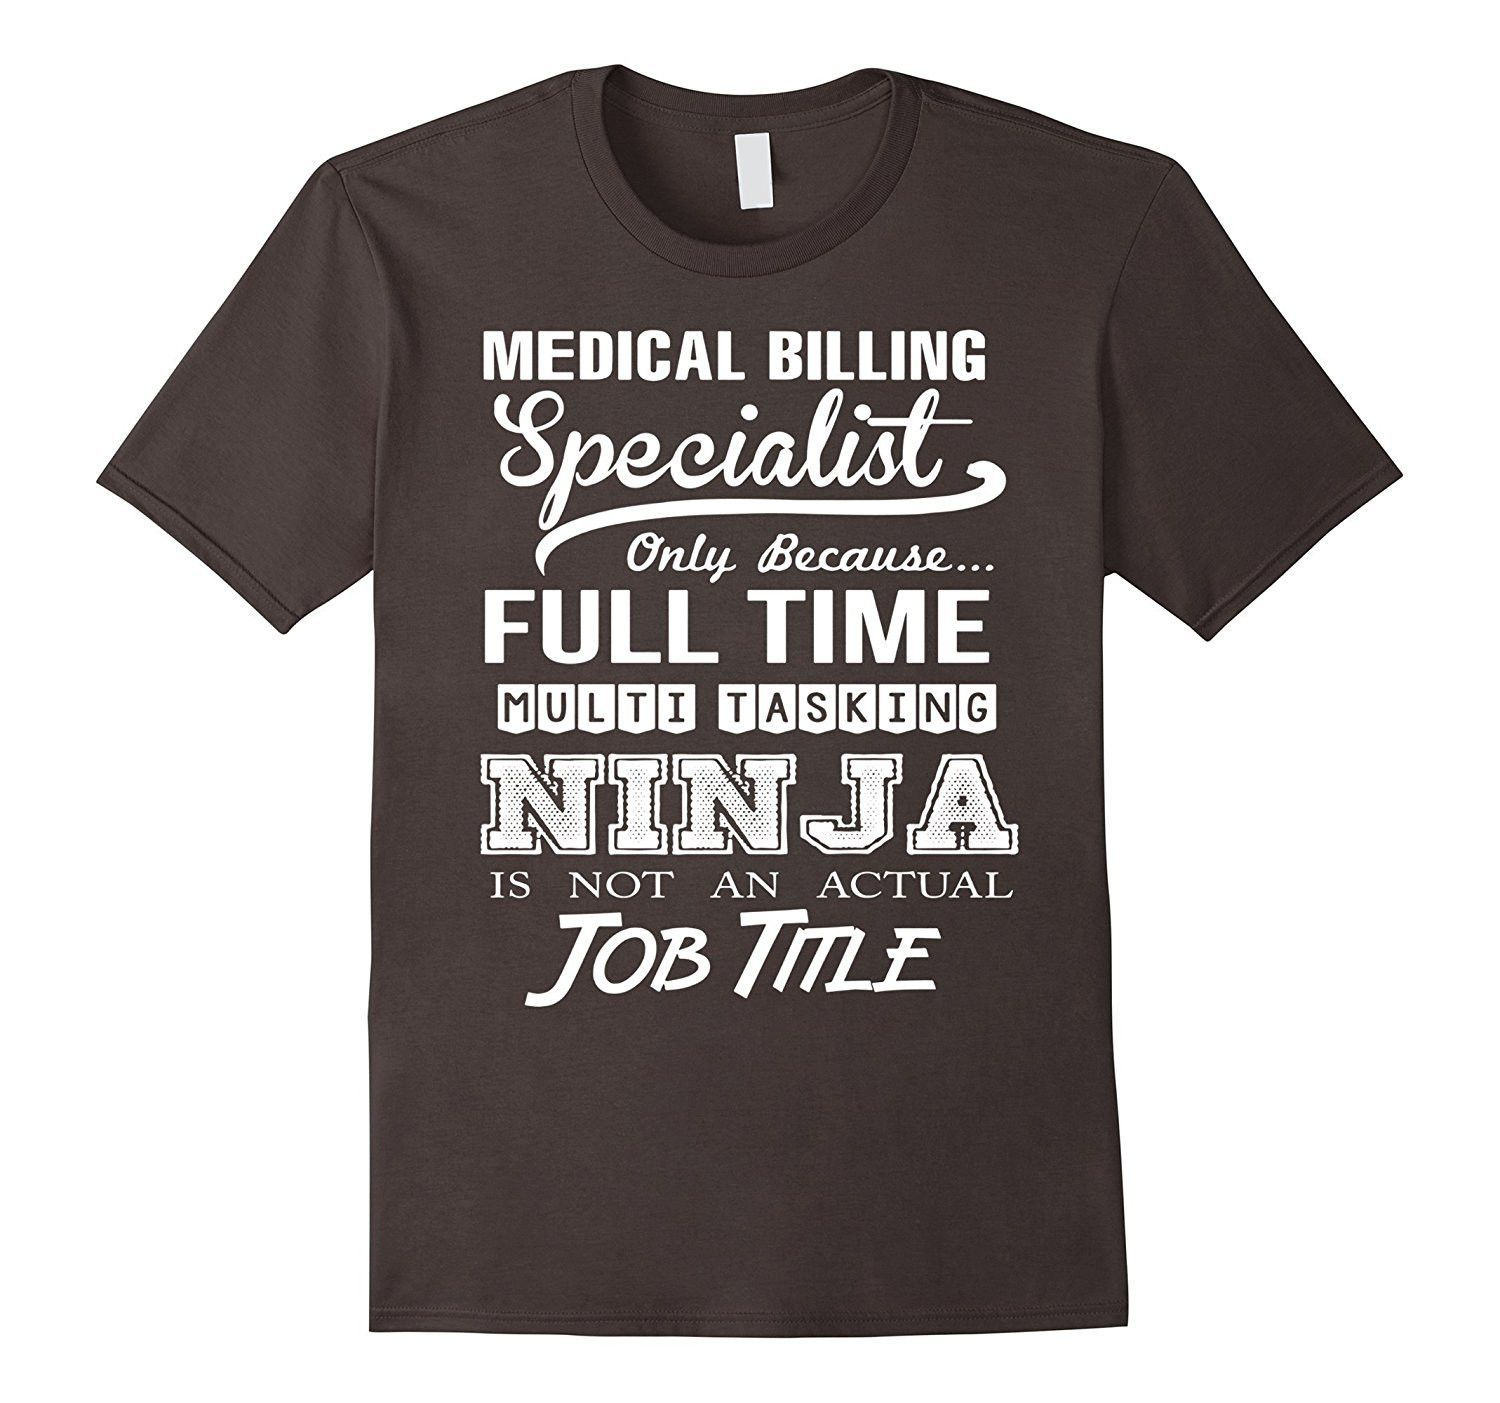 medical billing resumes%0A Medical Billing Specialist Job Title Shirt